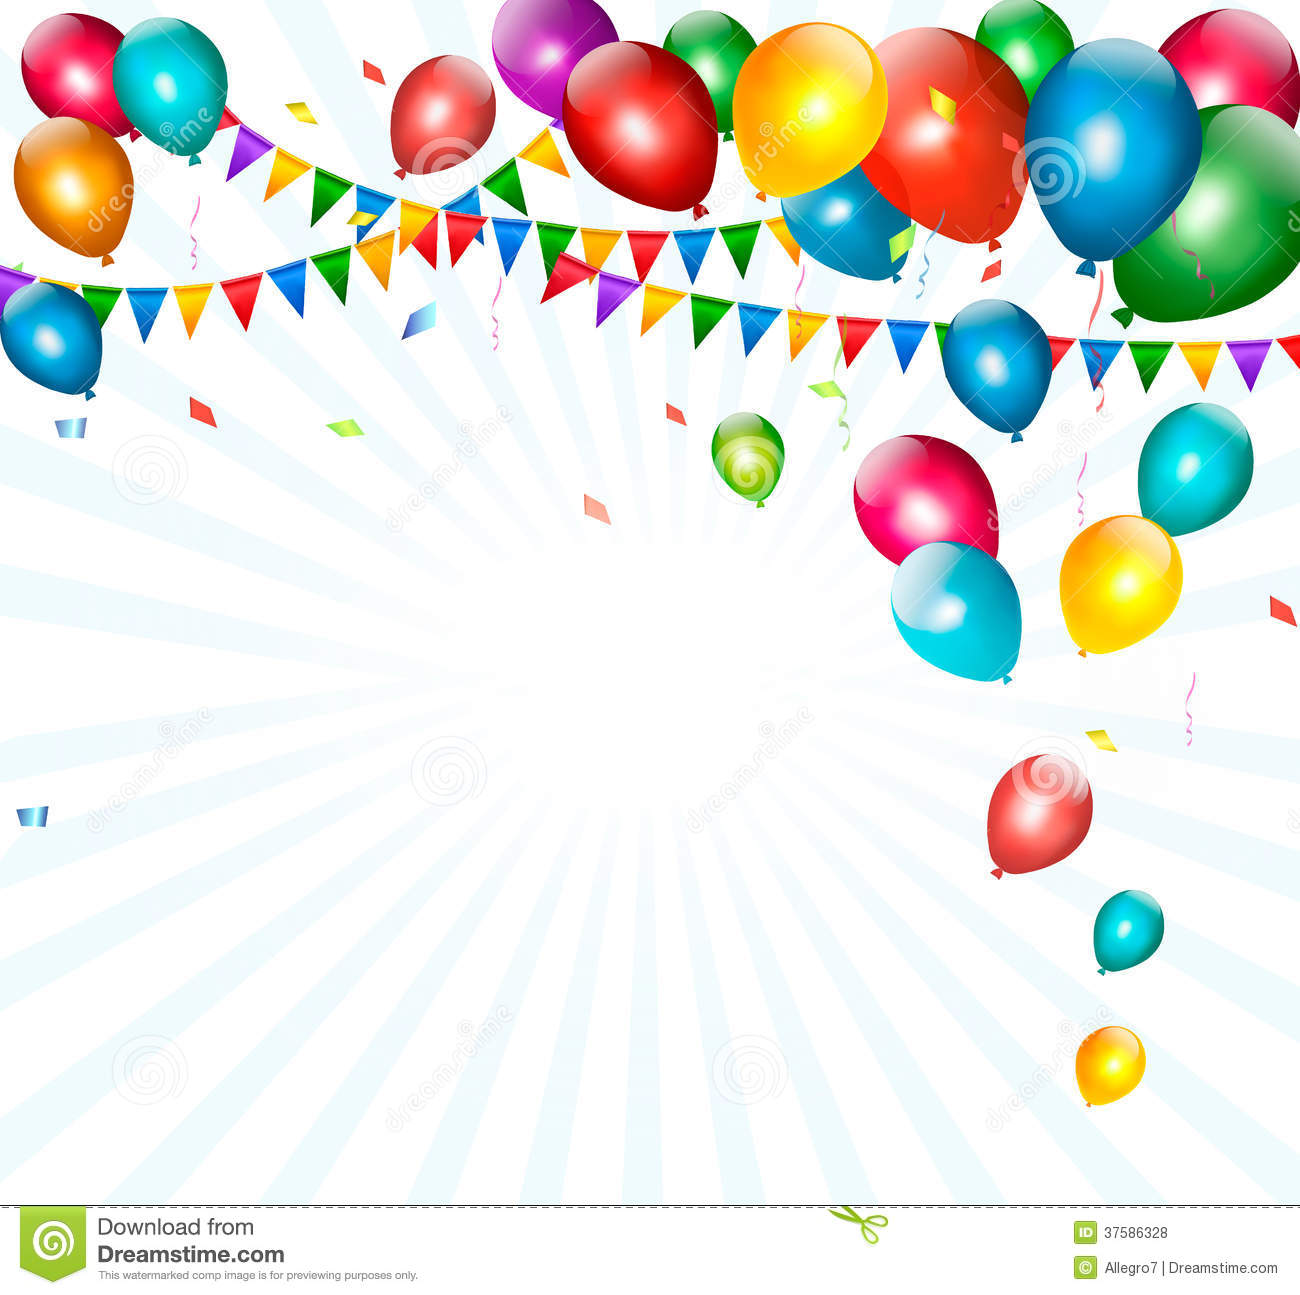 Holiday Background With Colorful Balloons And Flag Stock Vector - Image: 37586328